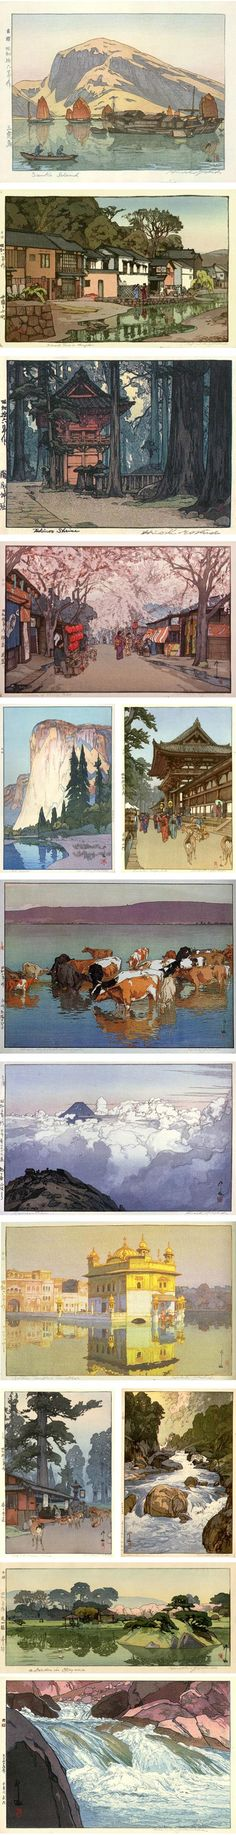 Hiroshi Yoshida | Early 20th Century painter and printmaker Hiroshi Yoshida is known in his native Japan as a Western style artist. Yoshida had superb control over atmospheric perspective and excelled at the depiction of light and reflections on the surface of water.